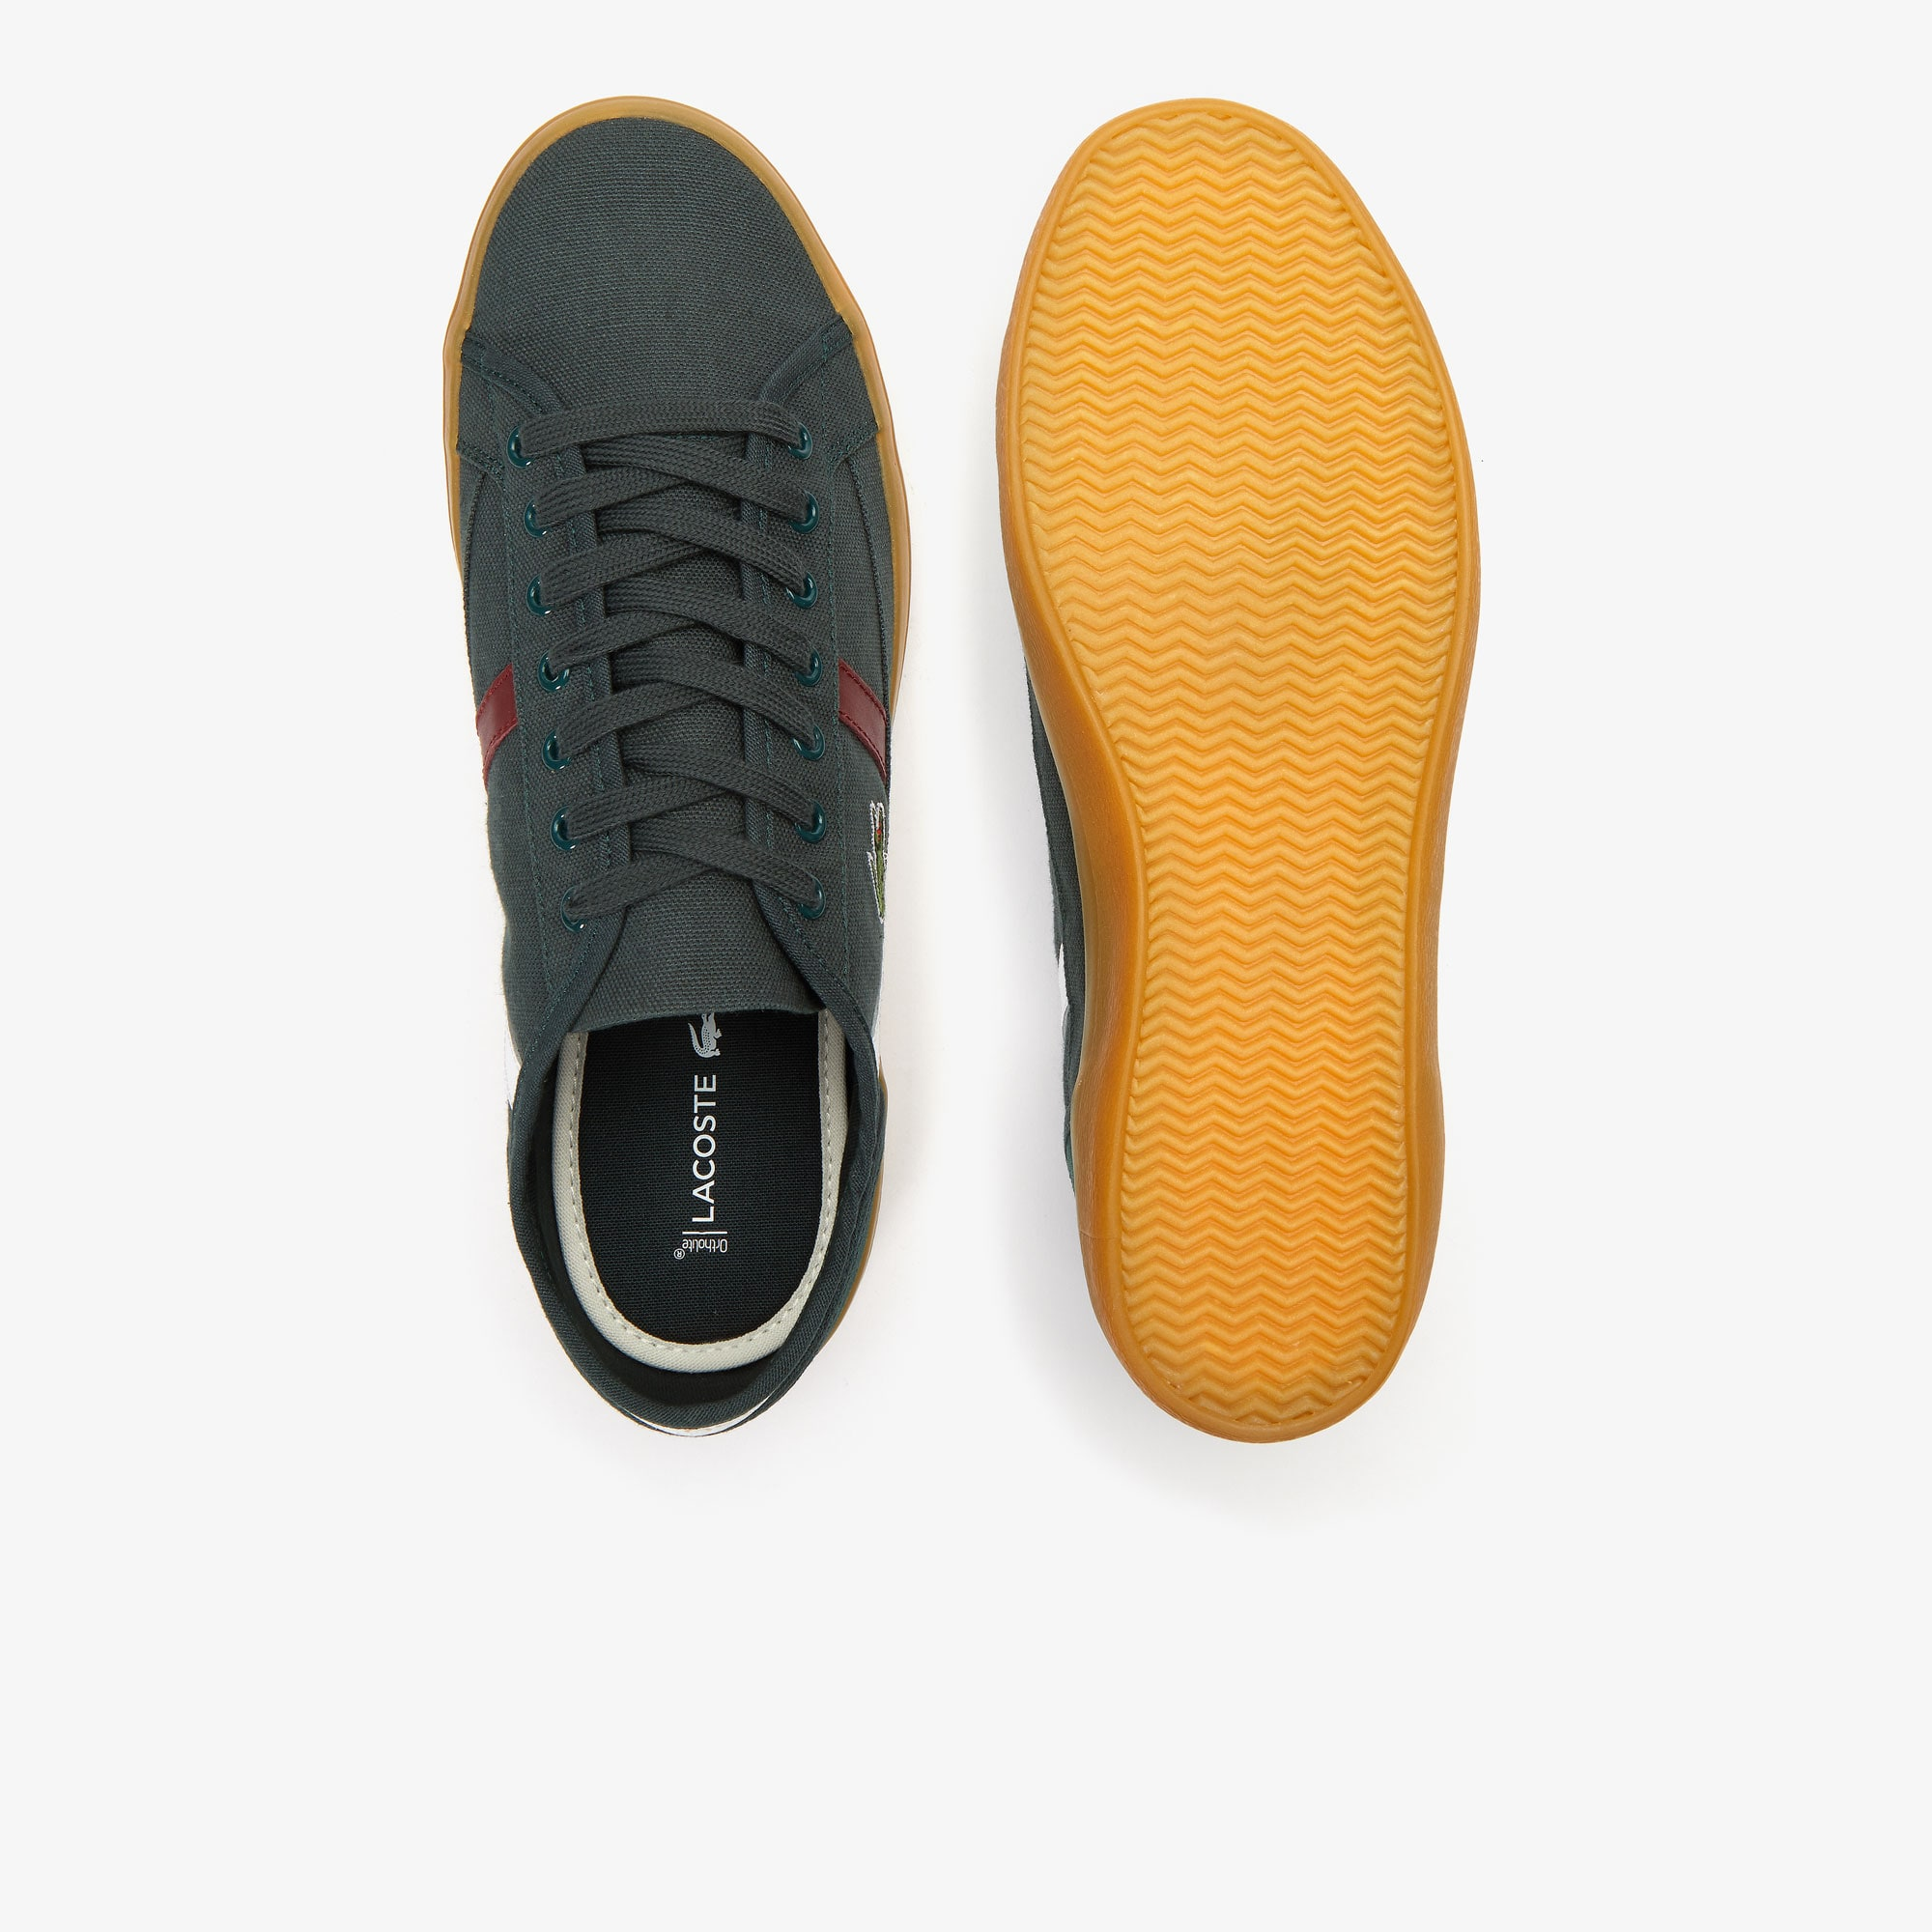 Men's Sideline Canvas and Two-Tone Leather Sneakers